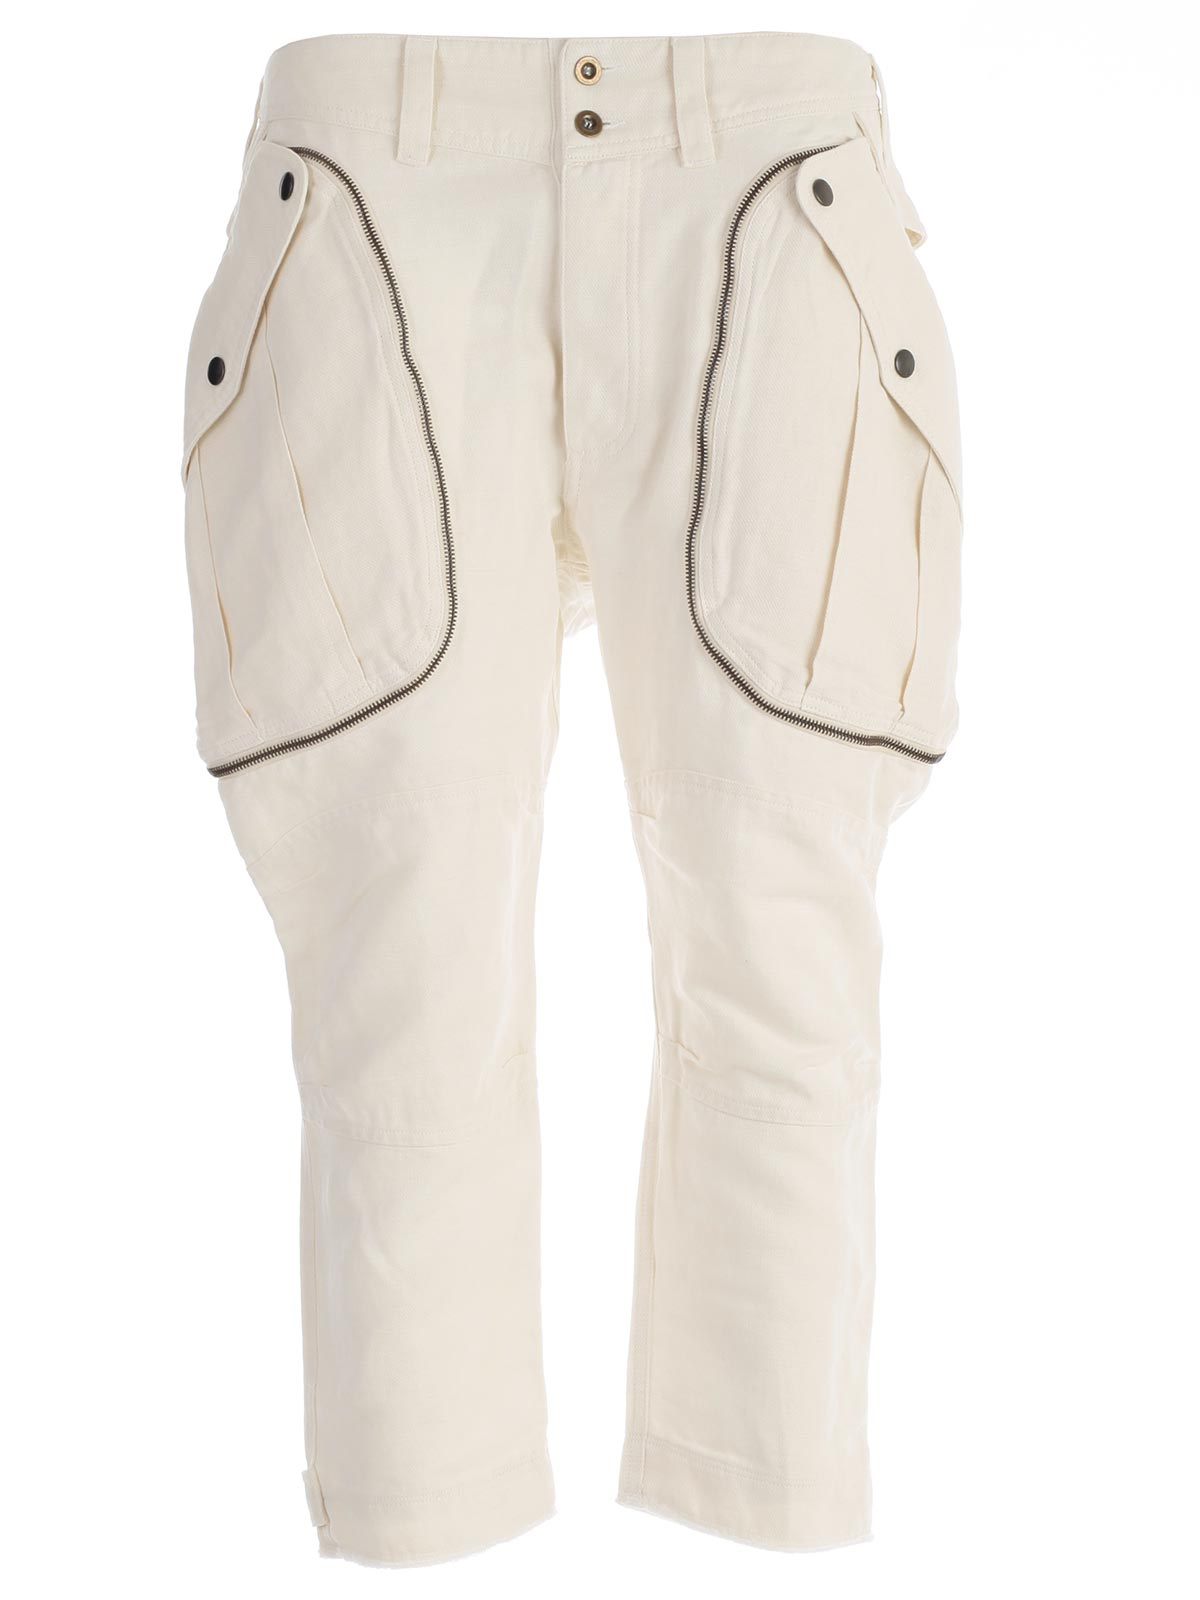 Picture of FAITH CONNEXION TROUSERS